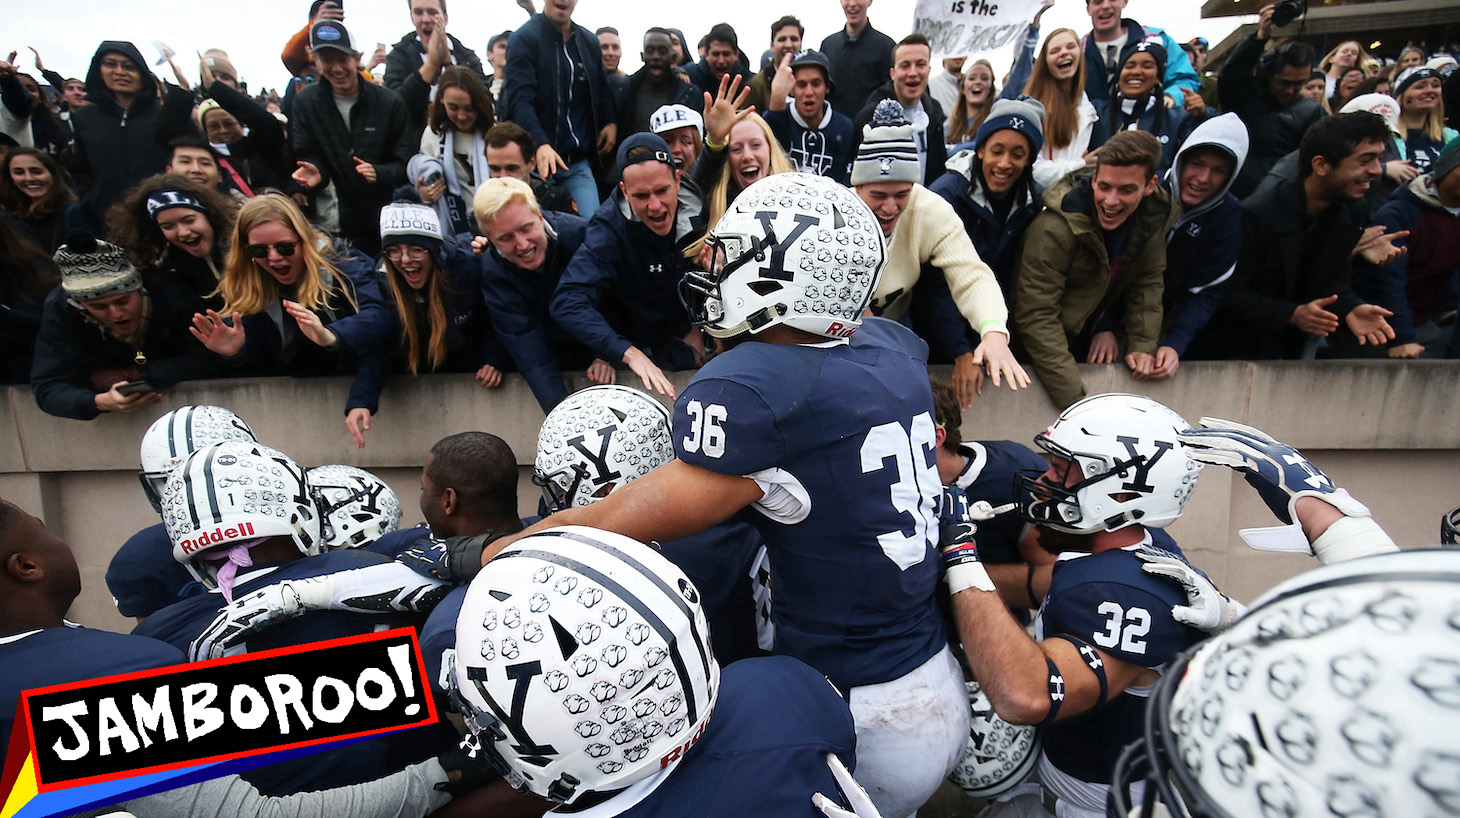 NEW HAVEN, CT - NOVEMBER 18: Deonte Henson #21 of the Yale Bulldogs is congratulated by teammates after making an interception in teh fourth quarter of a game against the Harvard Crimson at the Yale Bowl on November 18, 2017 in New Haven, Connecticut. (Photo by Adam Glanzman/Getty Images)